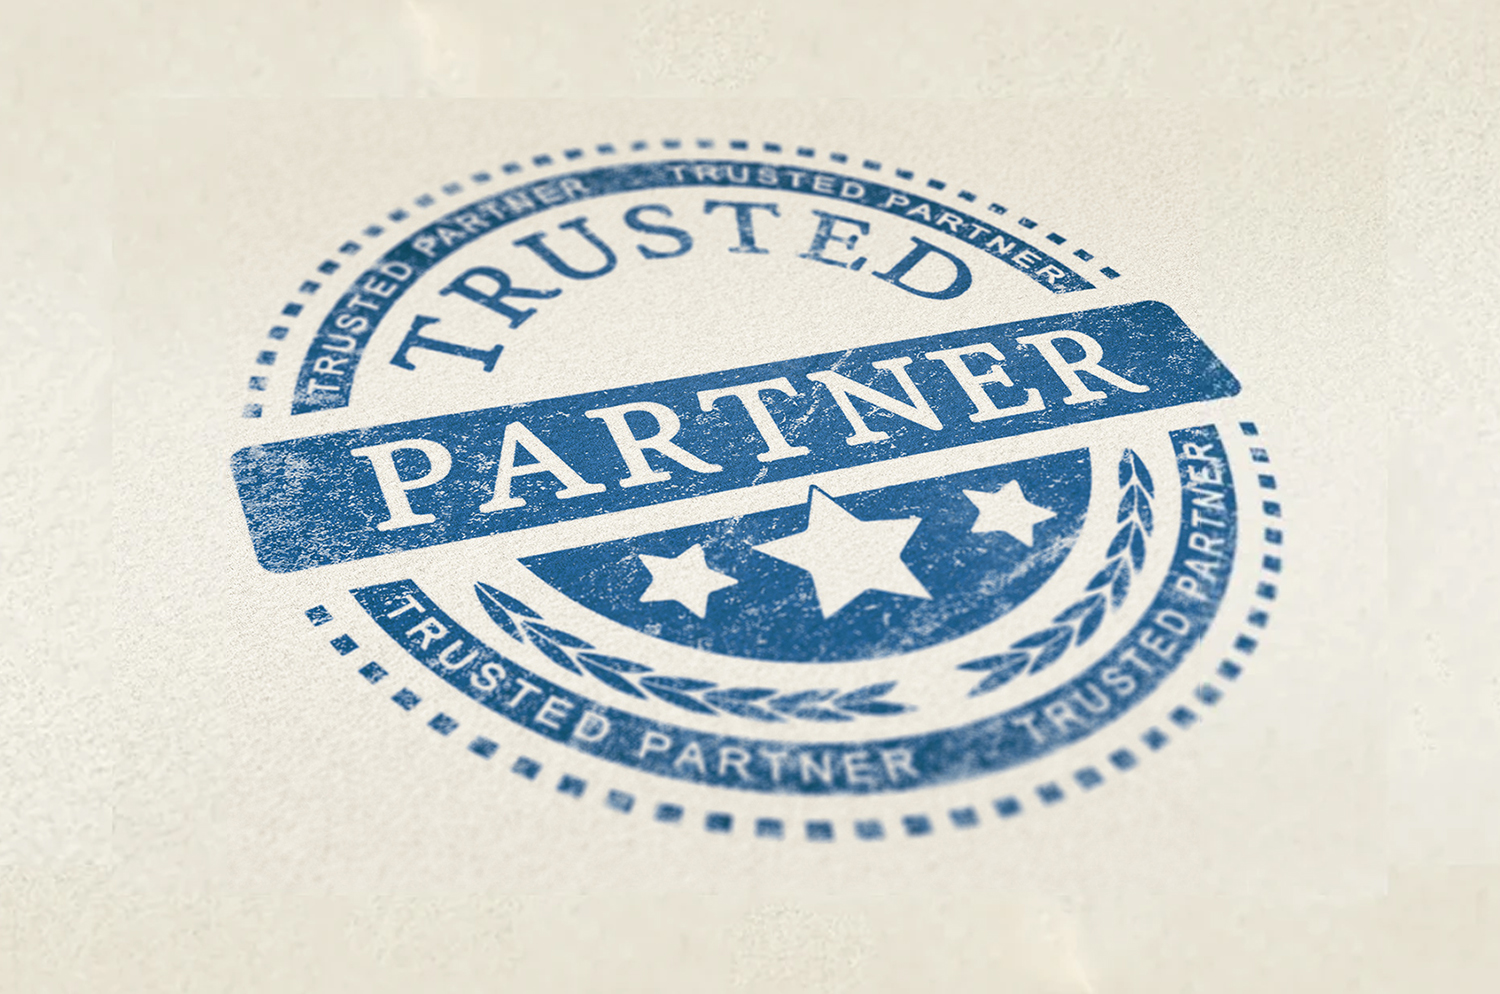 Trusted Partner 2